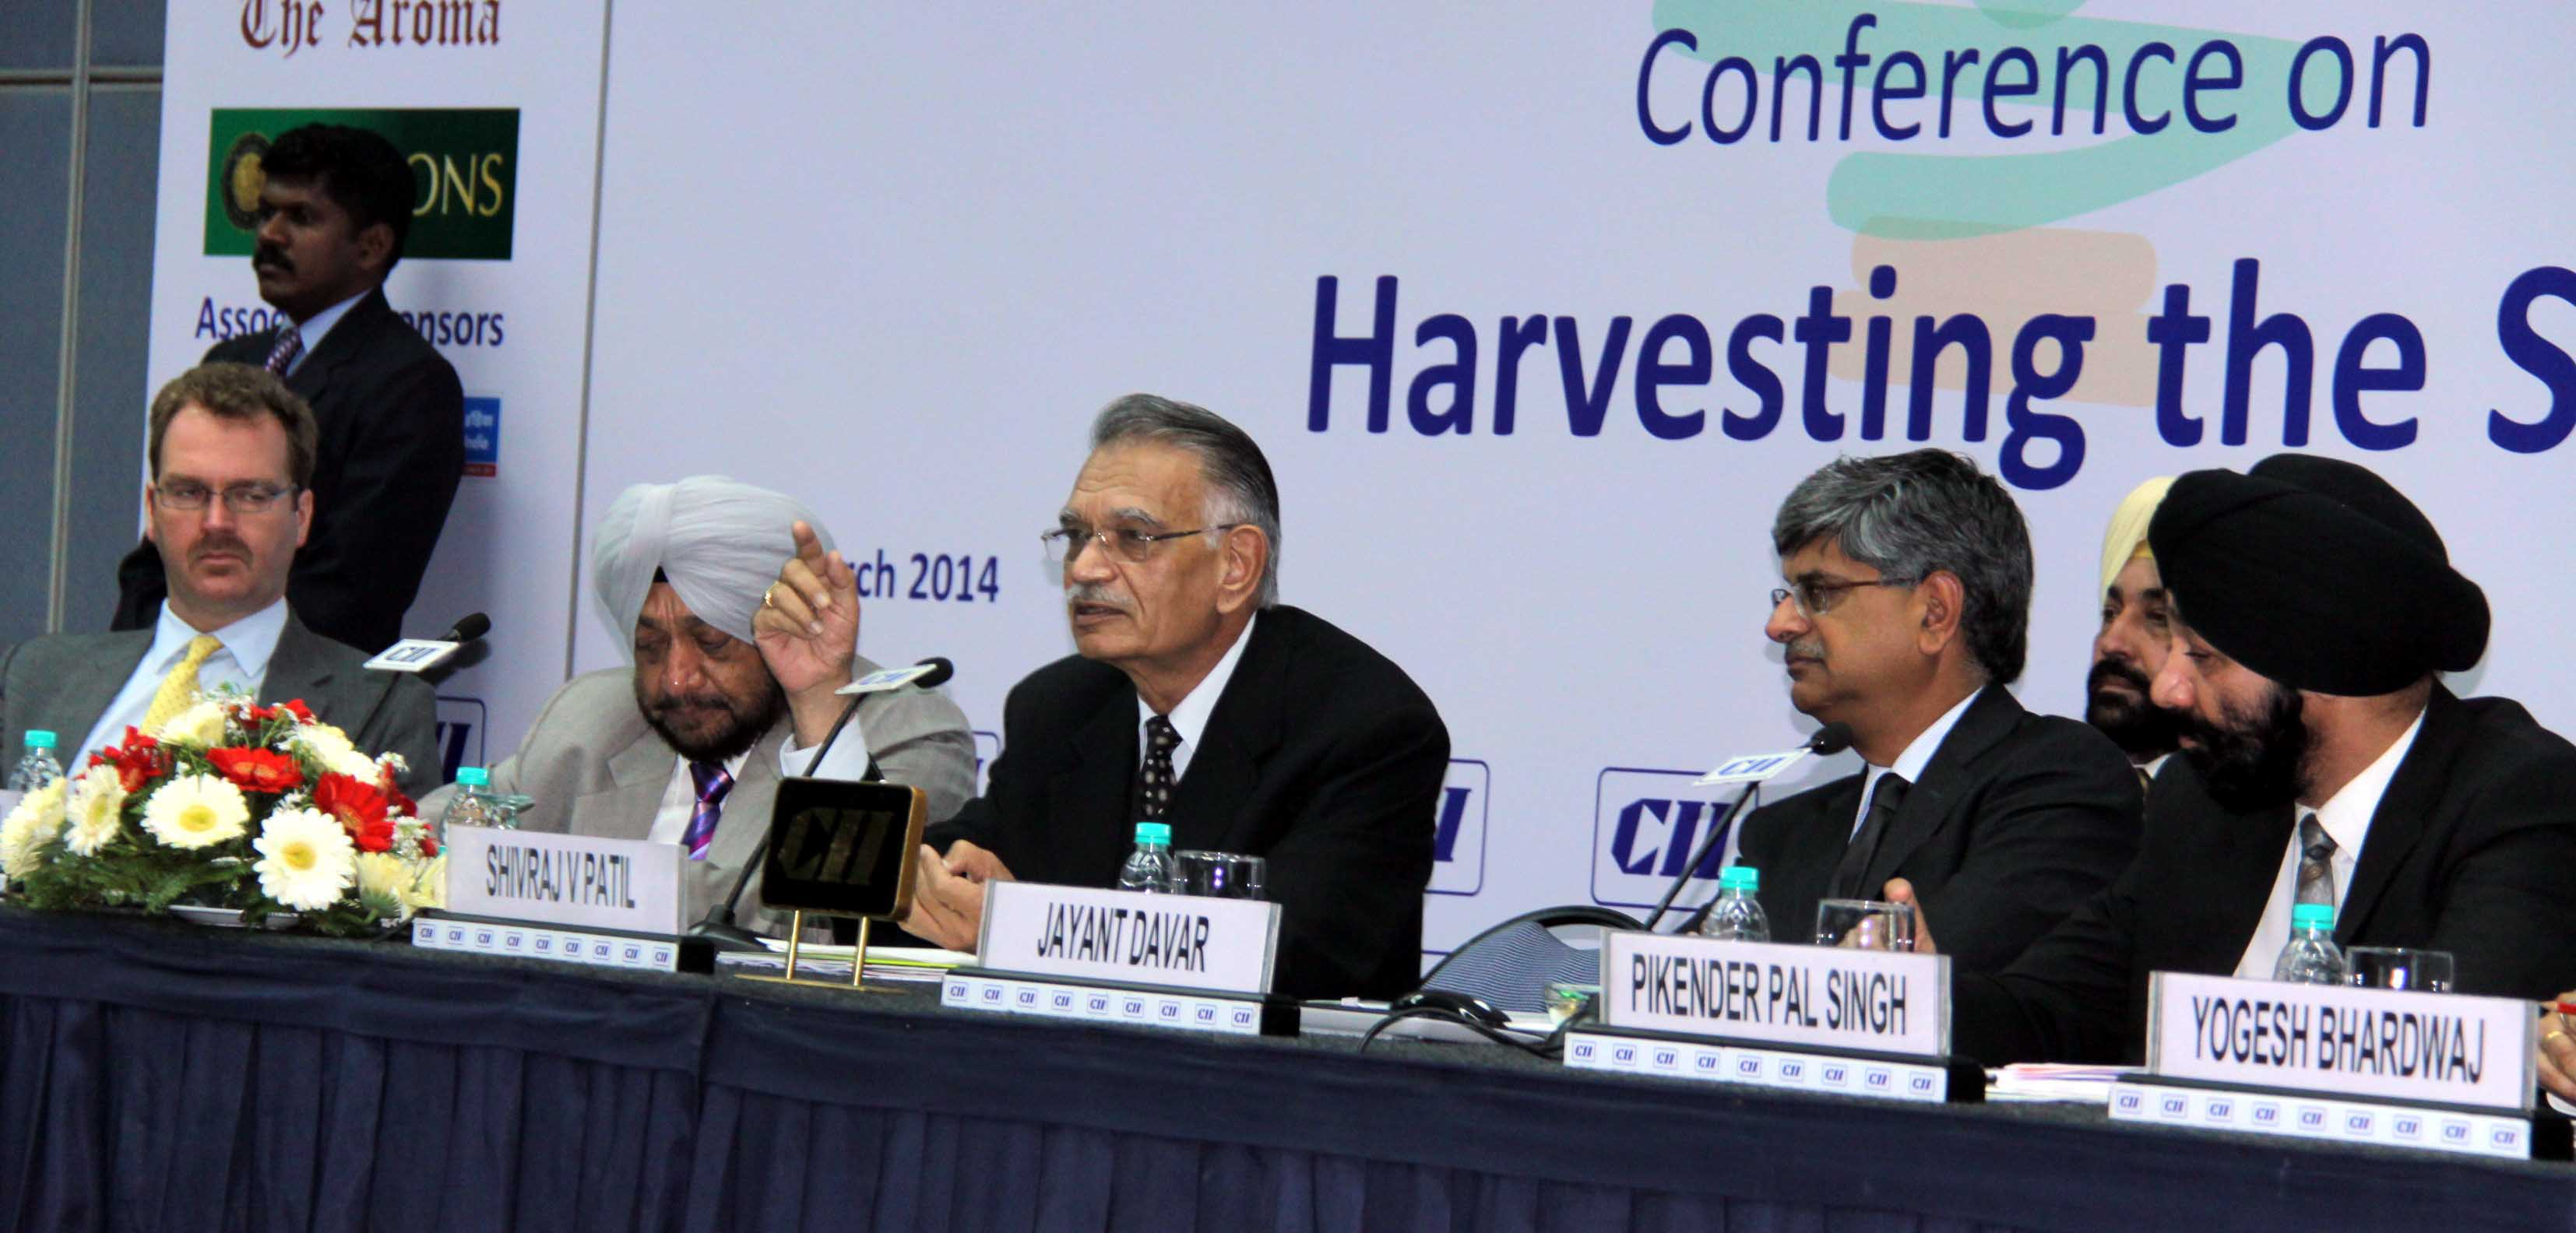 The Punjab Governor and Administrator, Union Territory, Chandigarh, Mr. Shivraj V. Patil speaking in a Conference on  Harvesting the Sun organised by CII, Chandigarh on 06.03.2014.